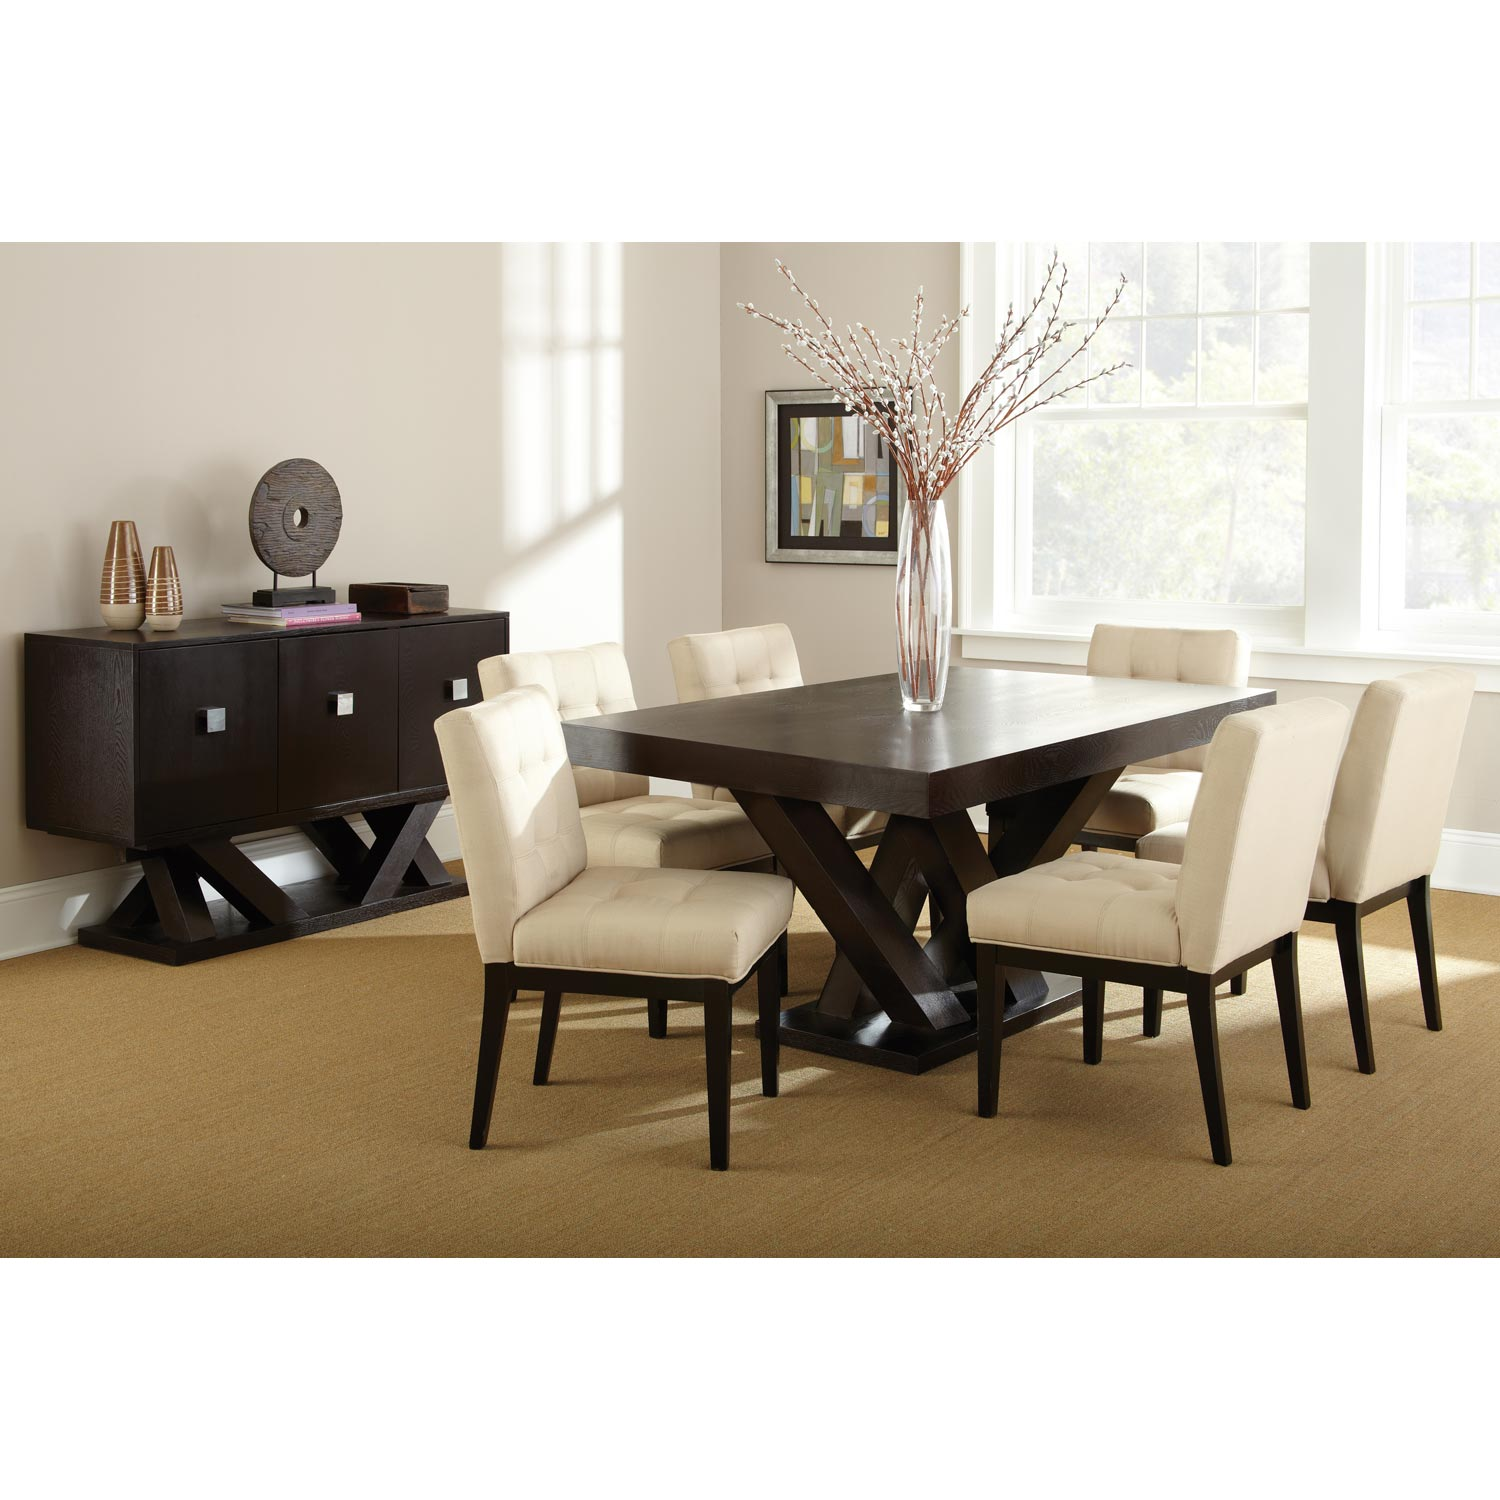 Tiffany Rectangular Dining Table - Espresso Wood - SSC-TF500T